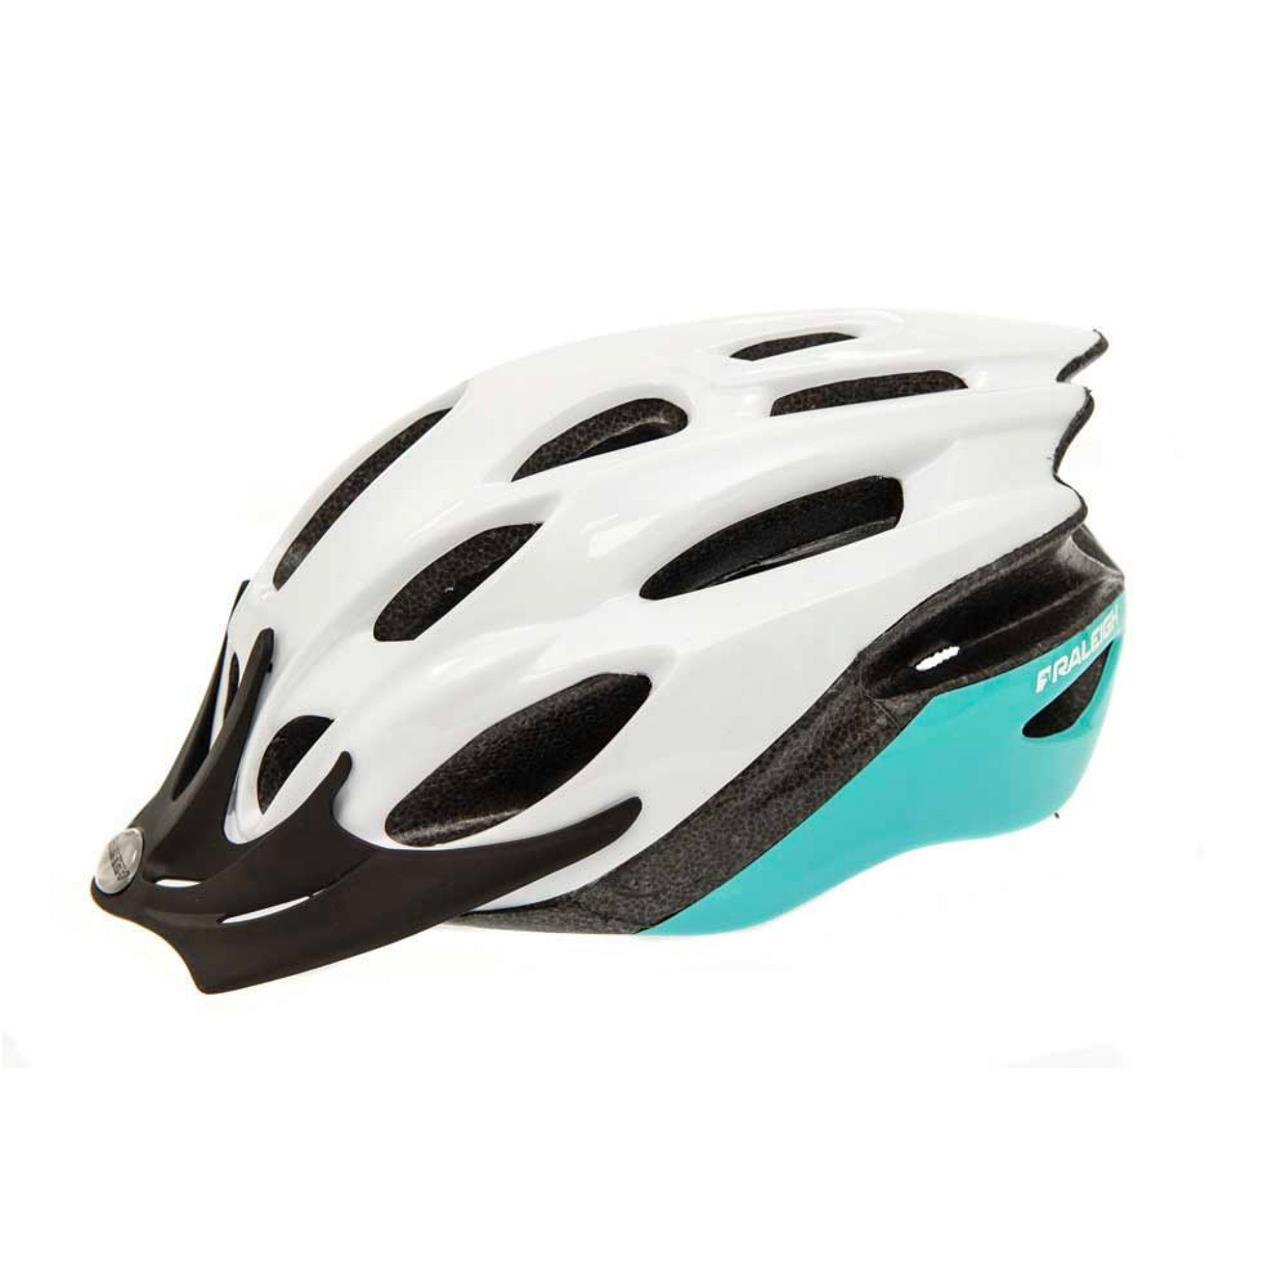 Raleigh Mission Evo Cycle Helmet, White & Green